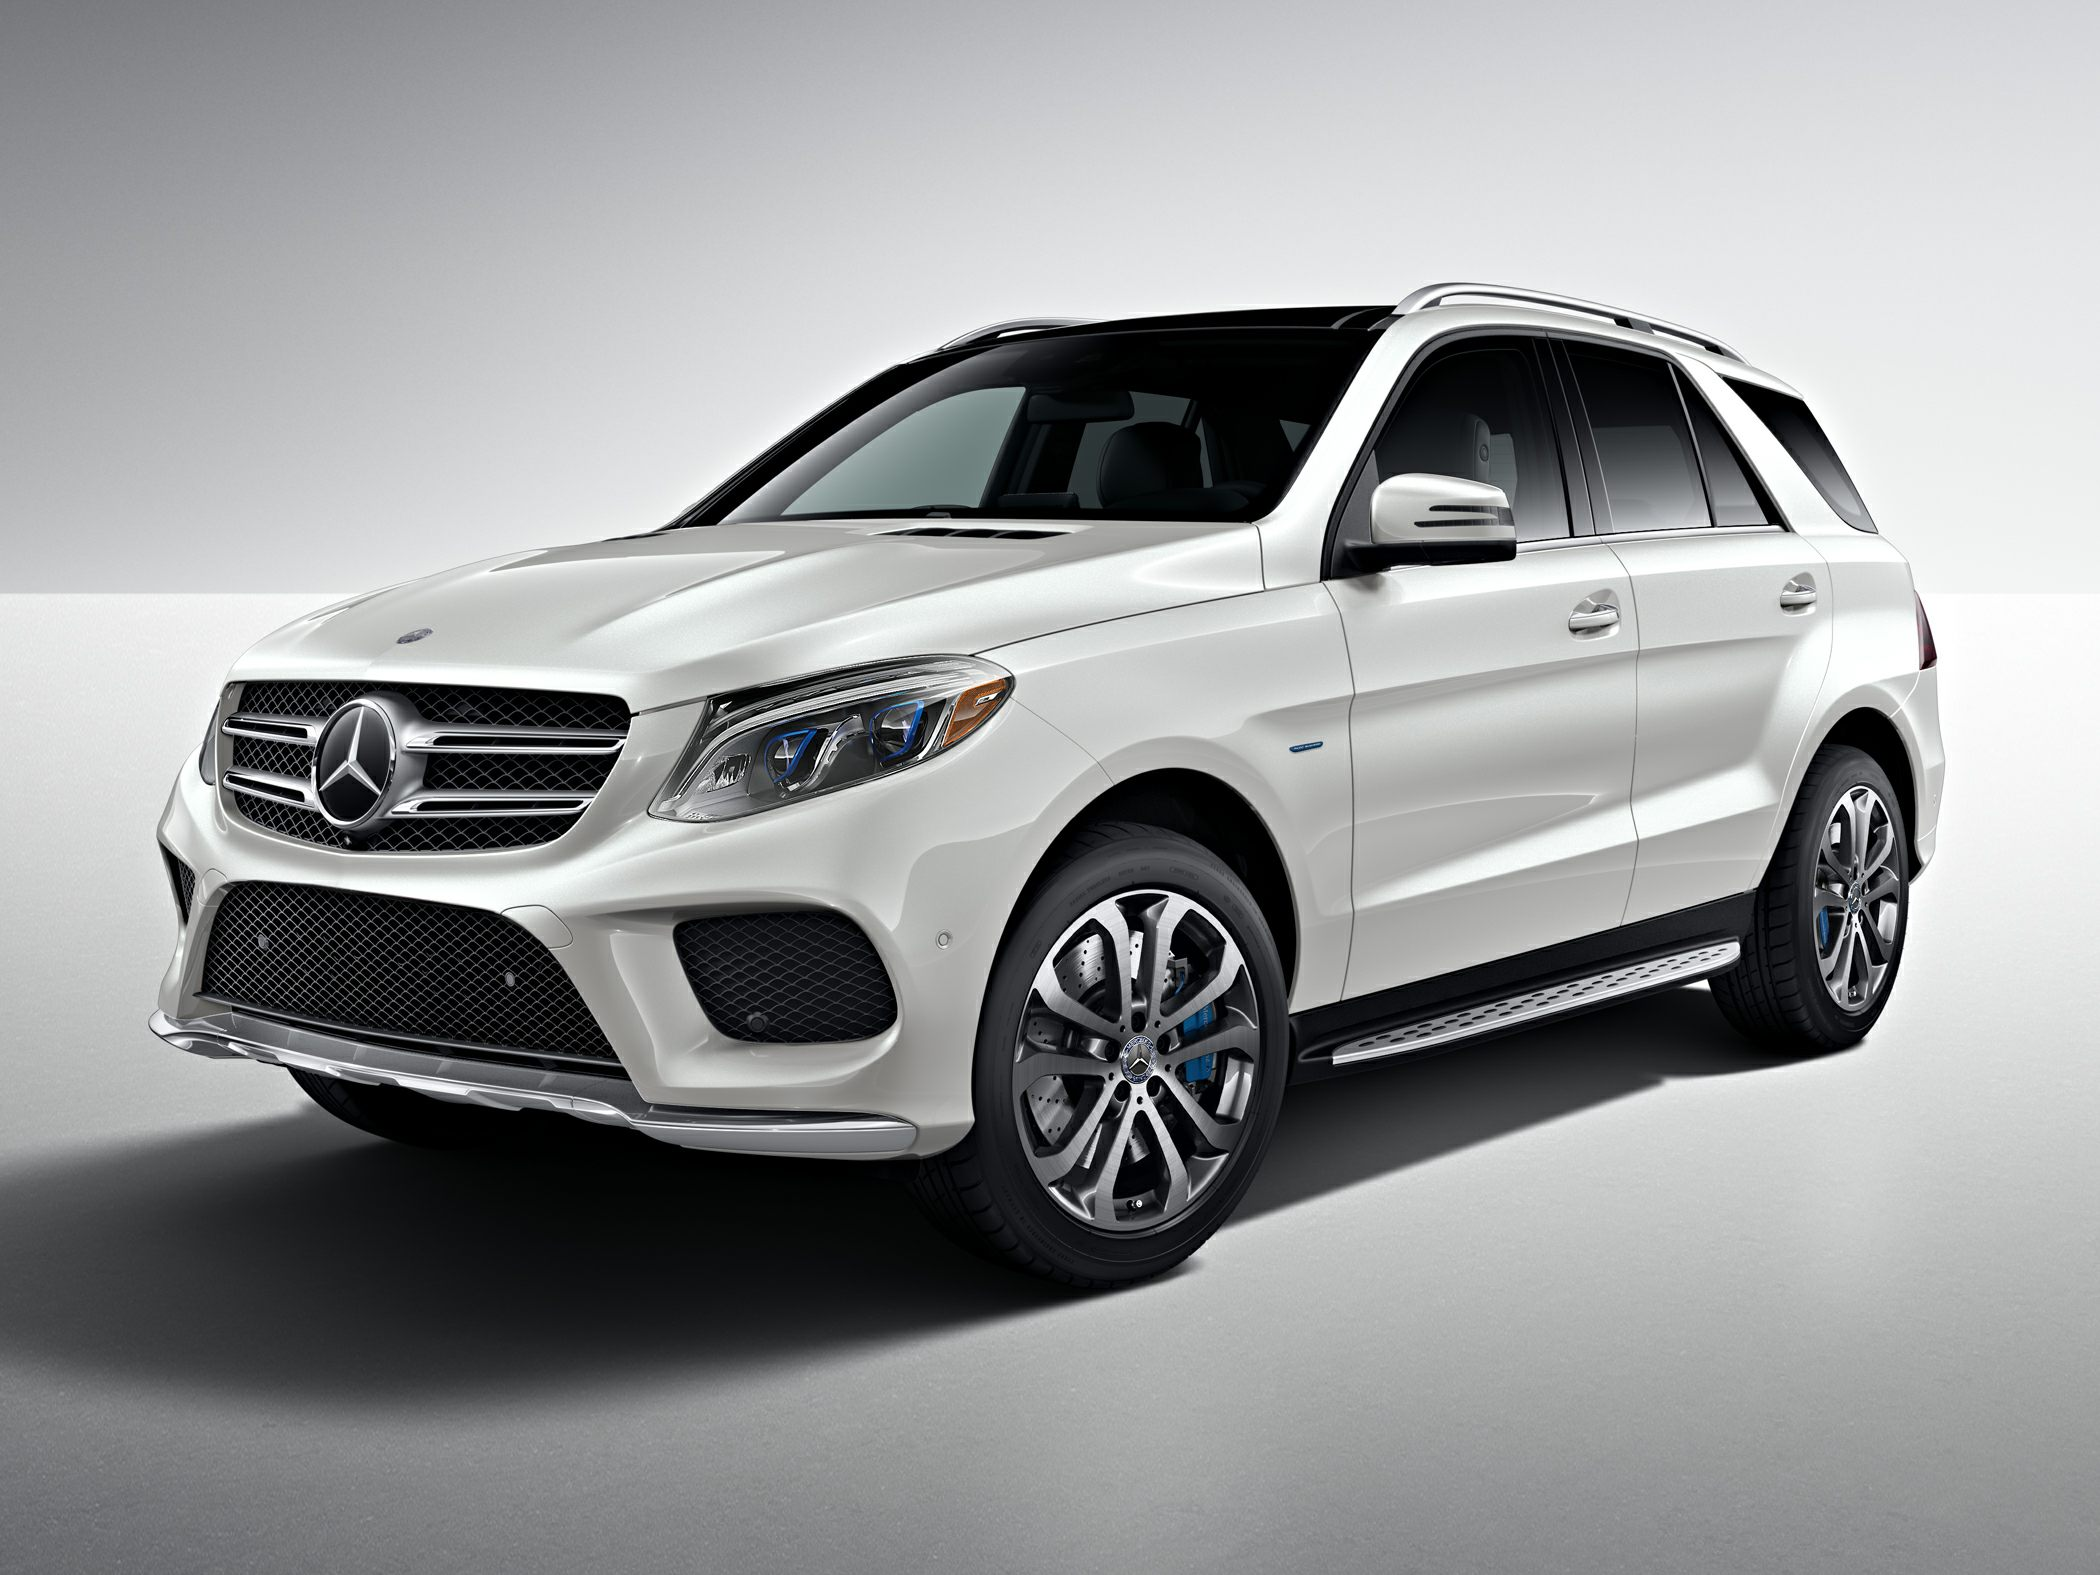 2017 mercedes benz gle550e deals prices incentives leases overview carsdirect. Black Bedroom Furniture Sets. Home Design Ideas